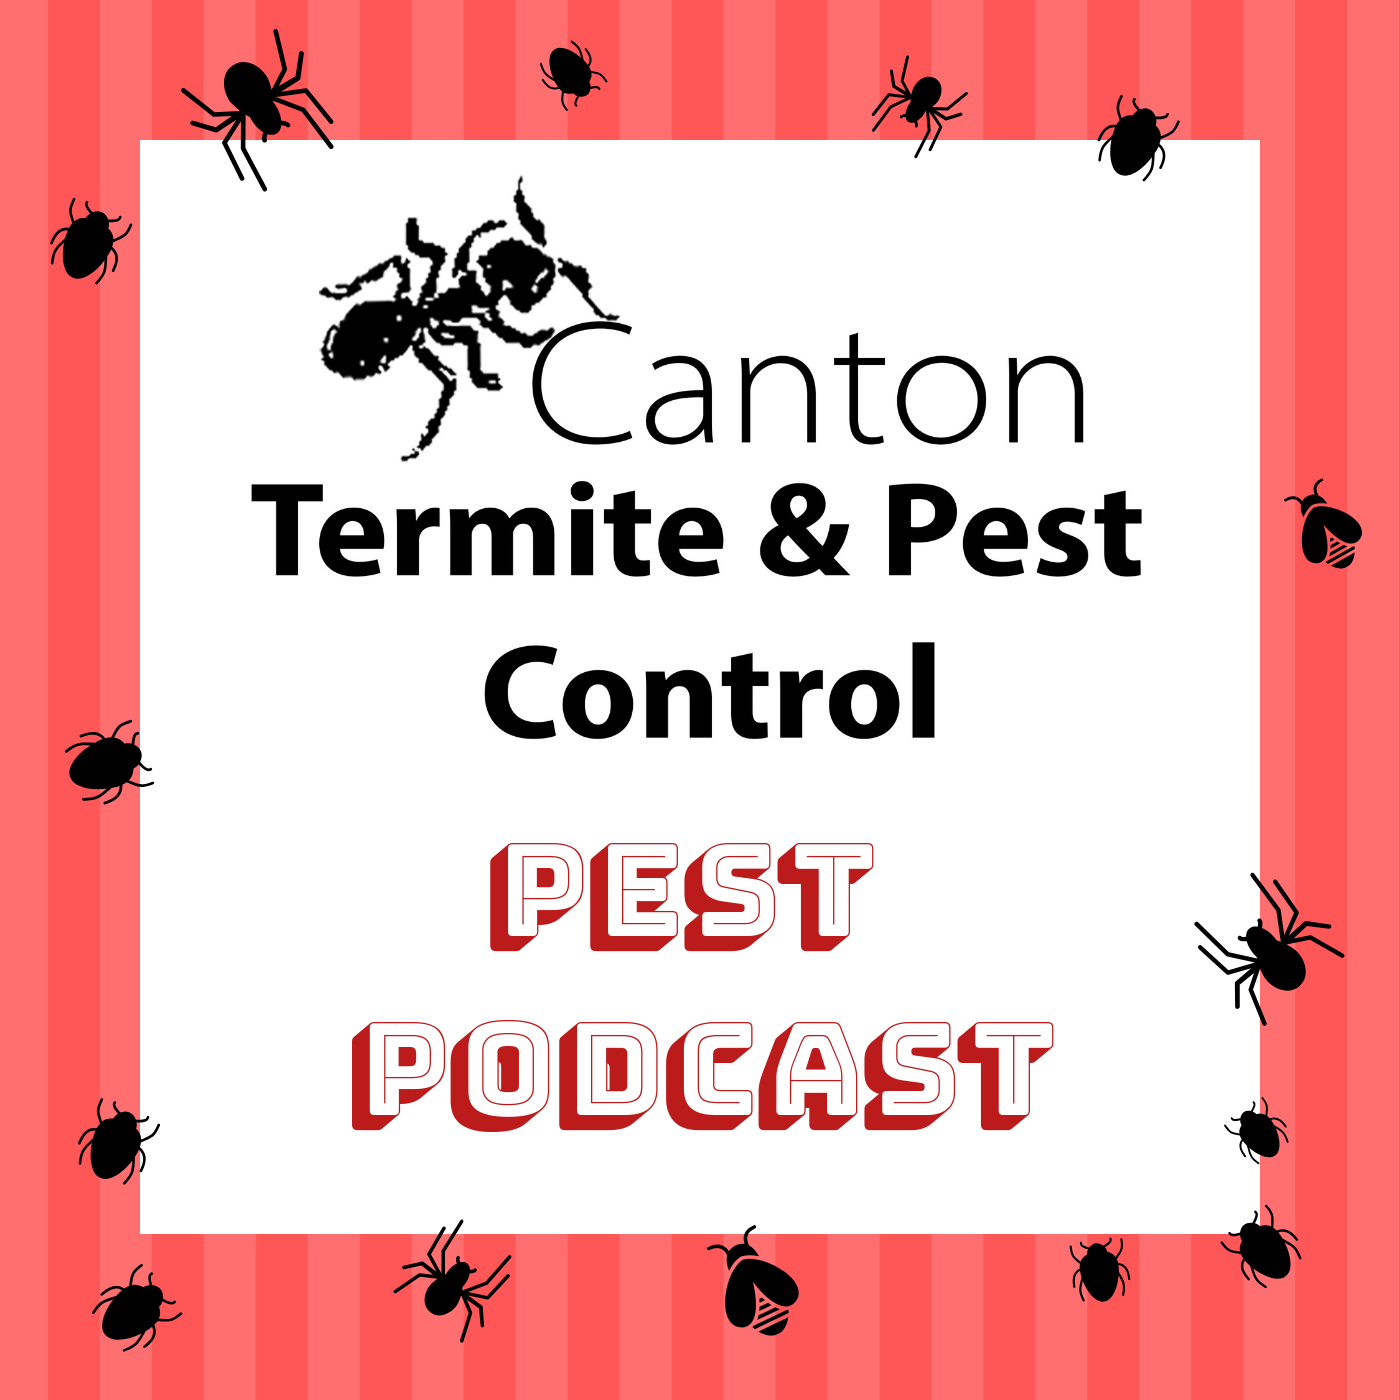 Canton Termite and Pest Control Podcast